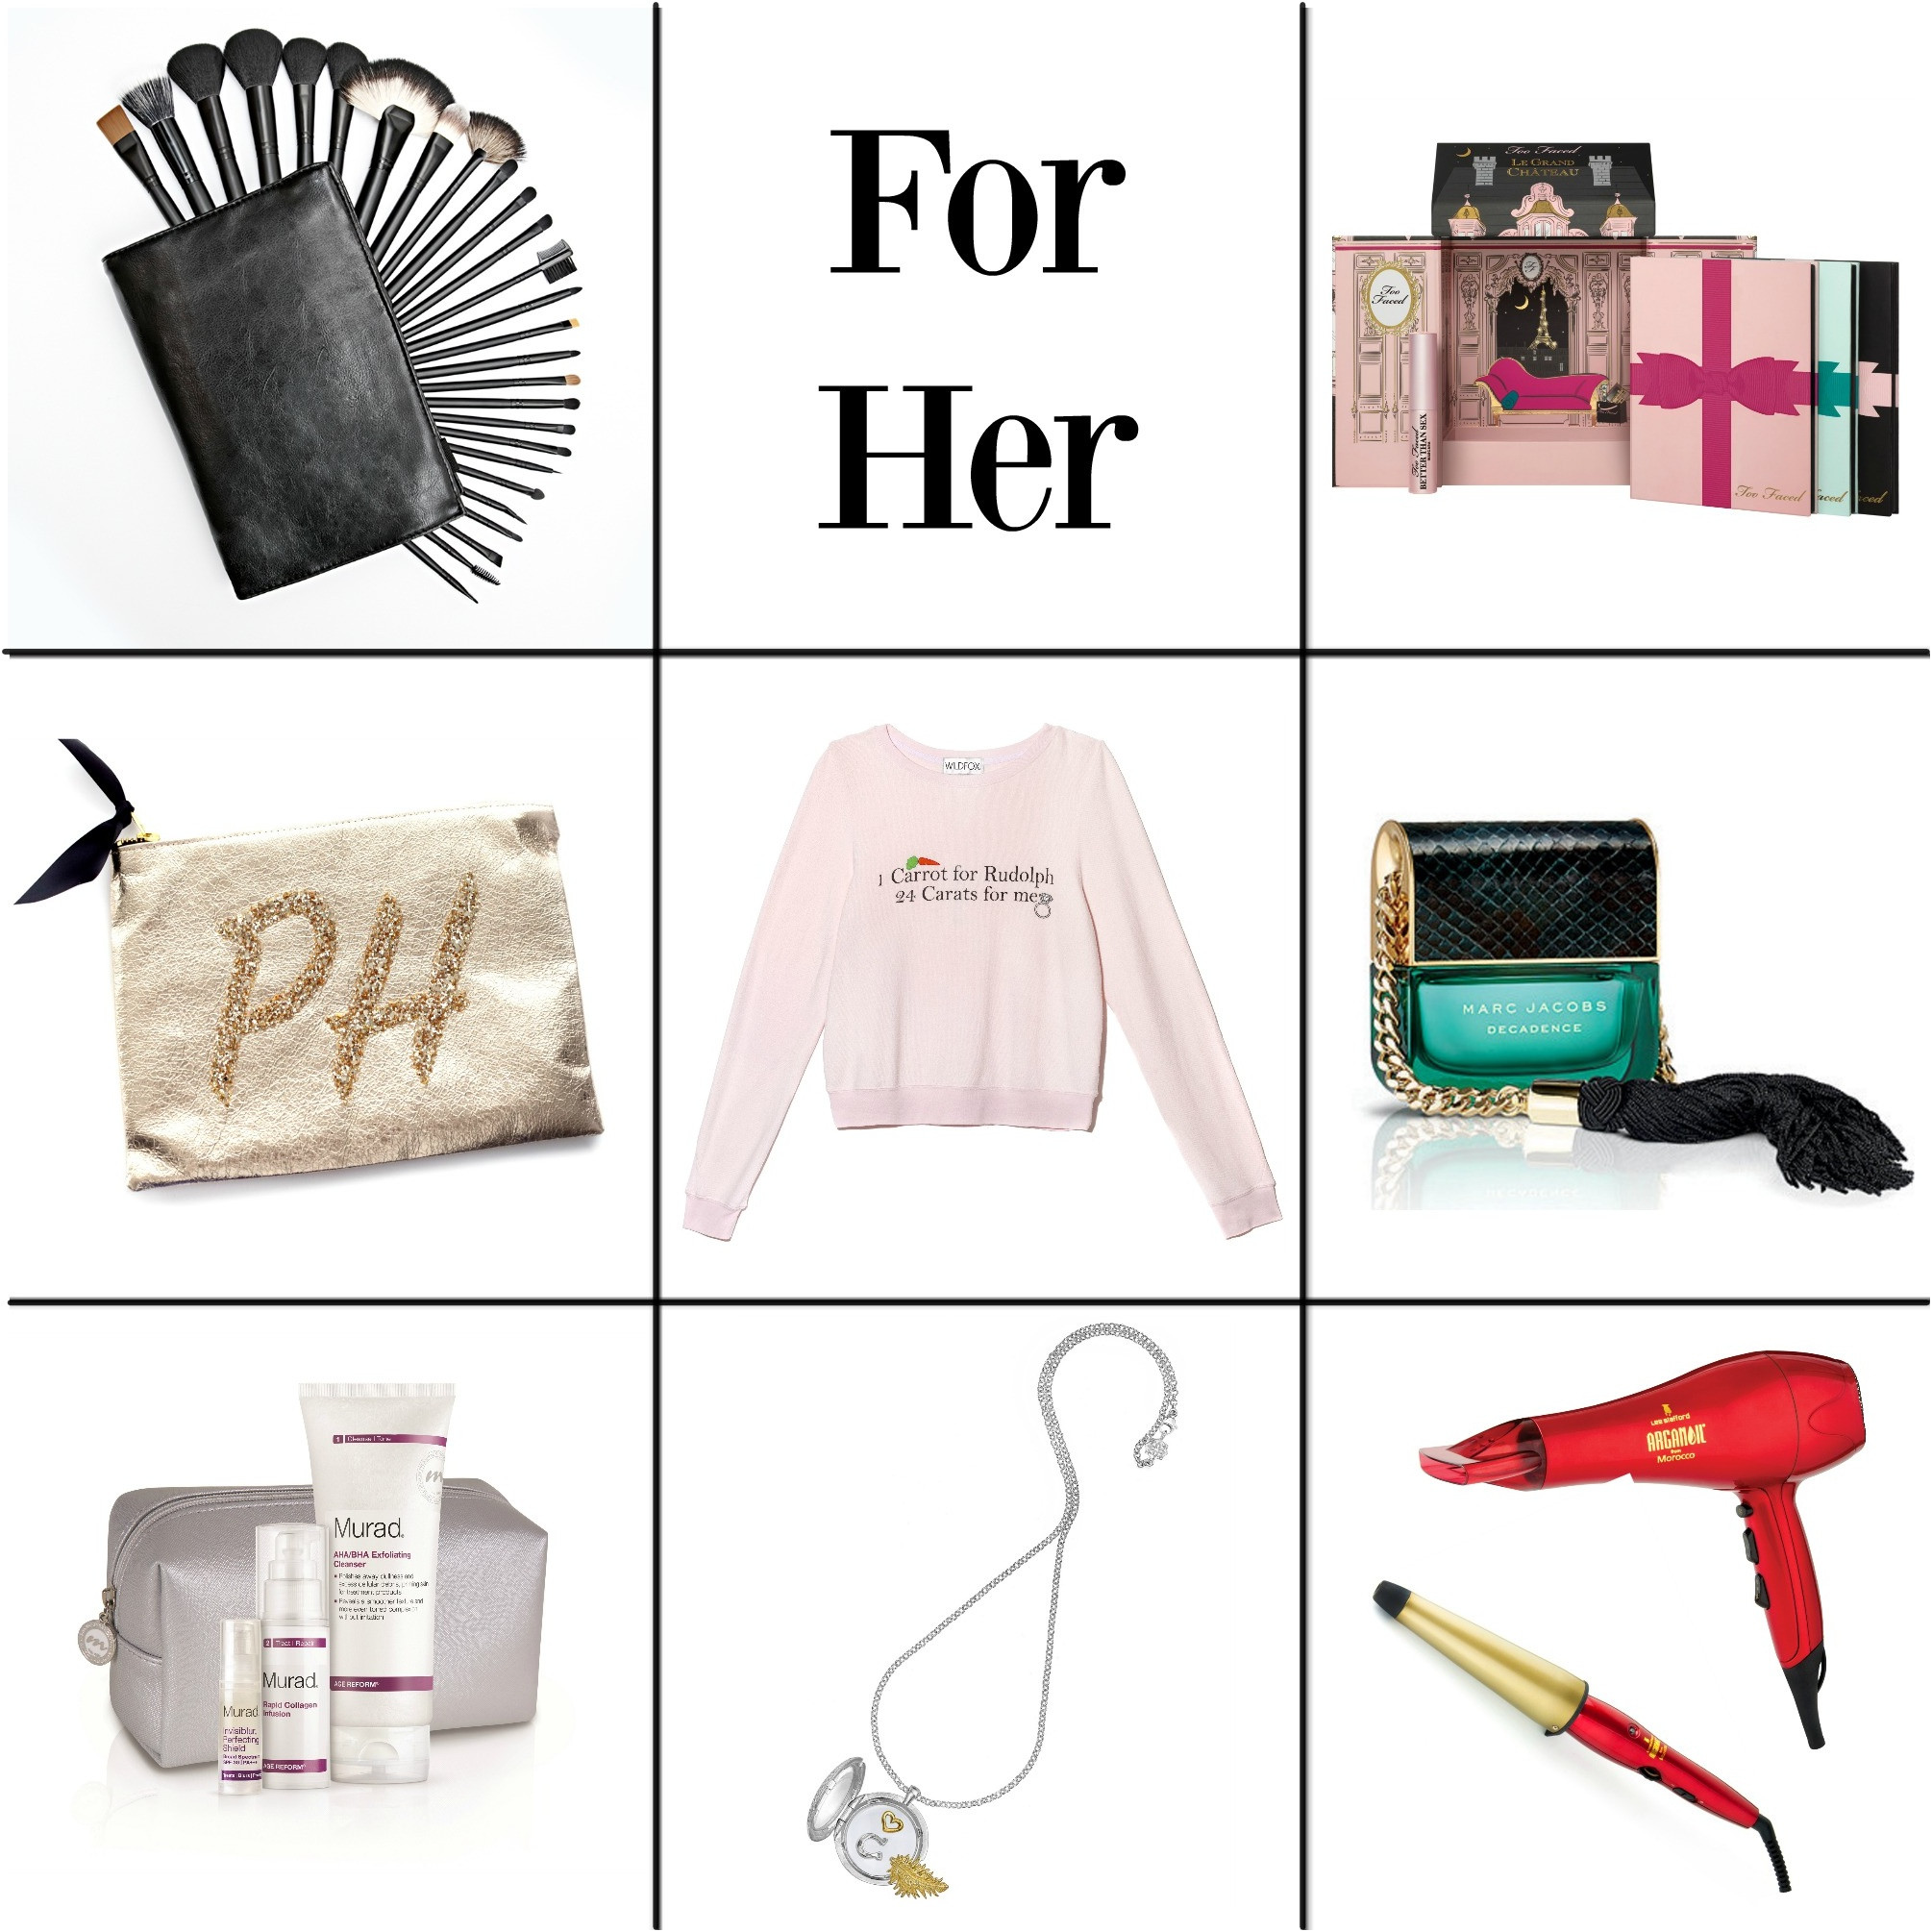 Best ideas about Gift Ideas For Her . Save or Pin Gift Ideas For Her Christmas 2015 Now.